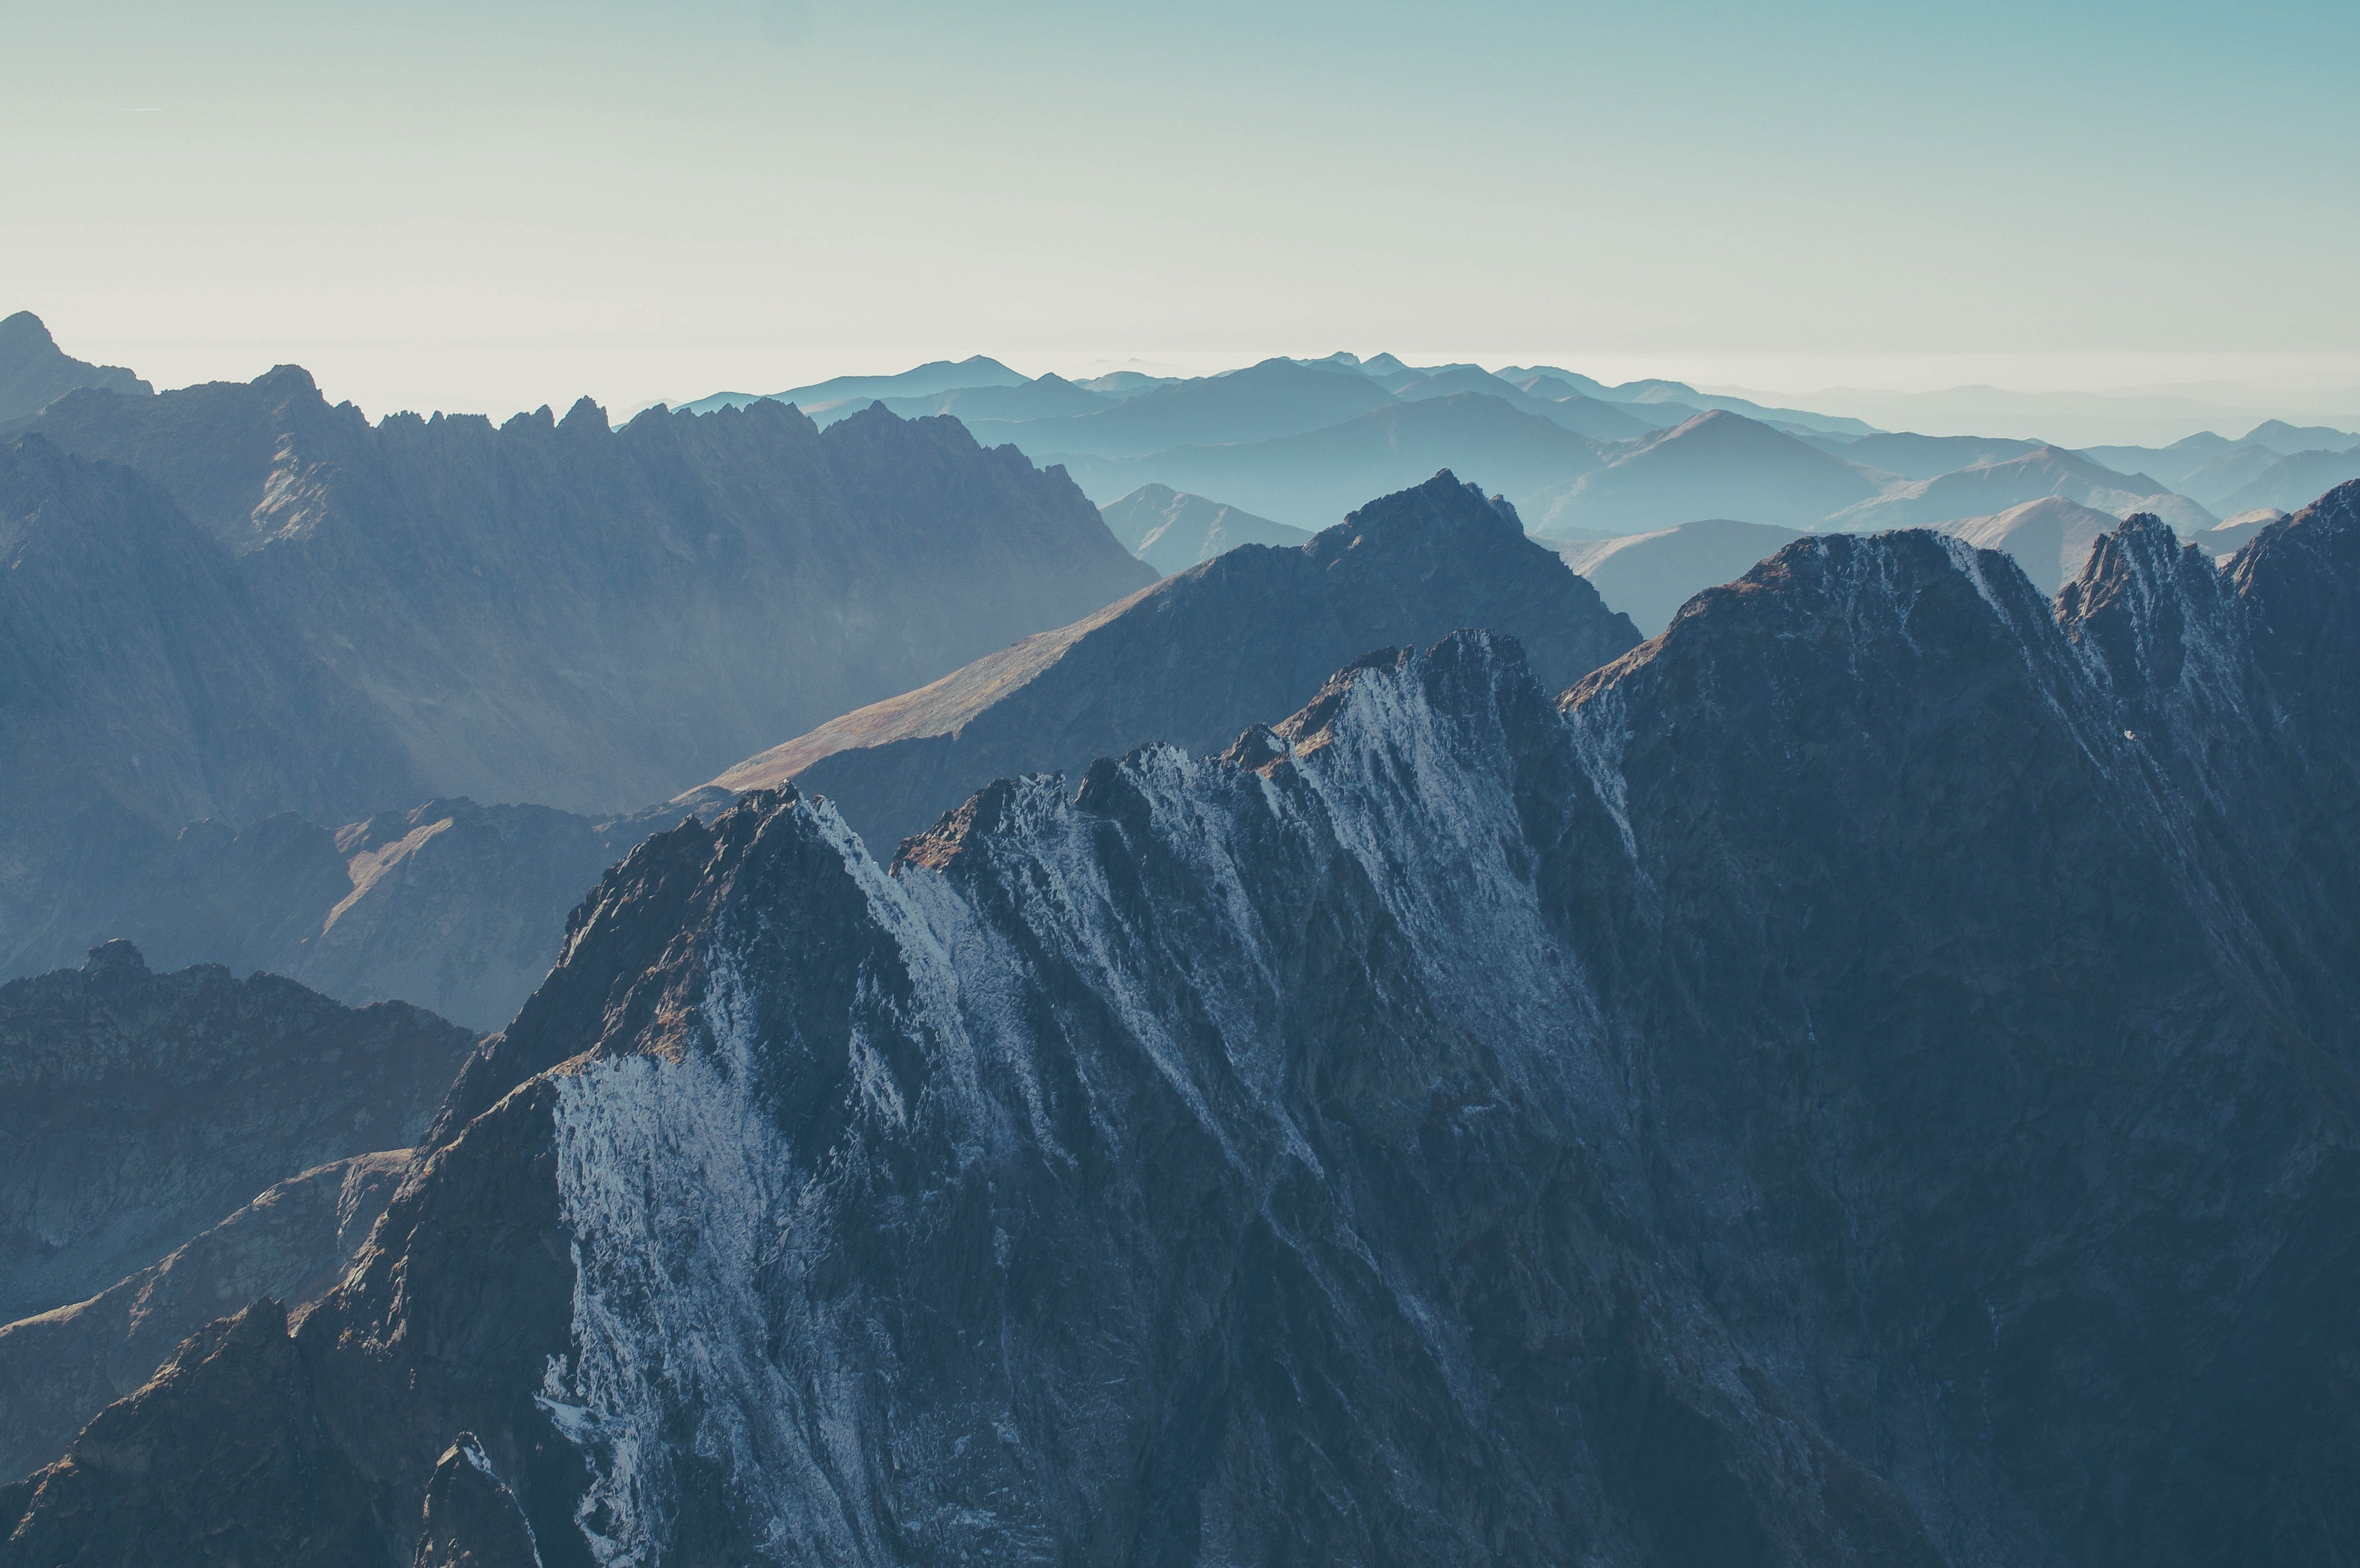 Sharp mountain ridges stretching to the horizon in the High Tatras